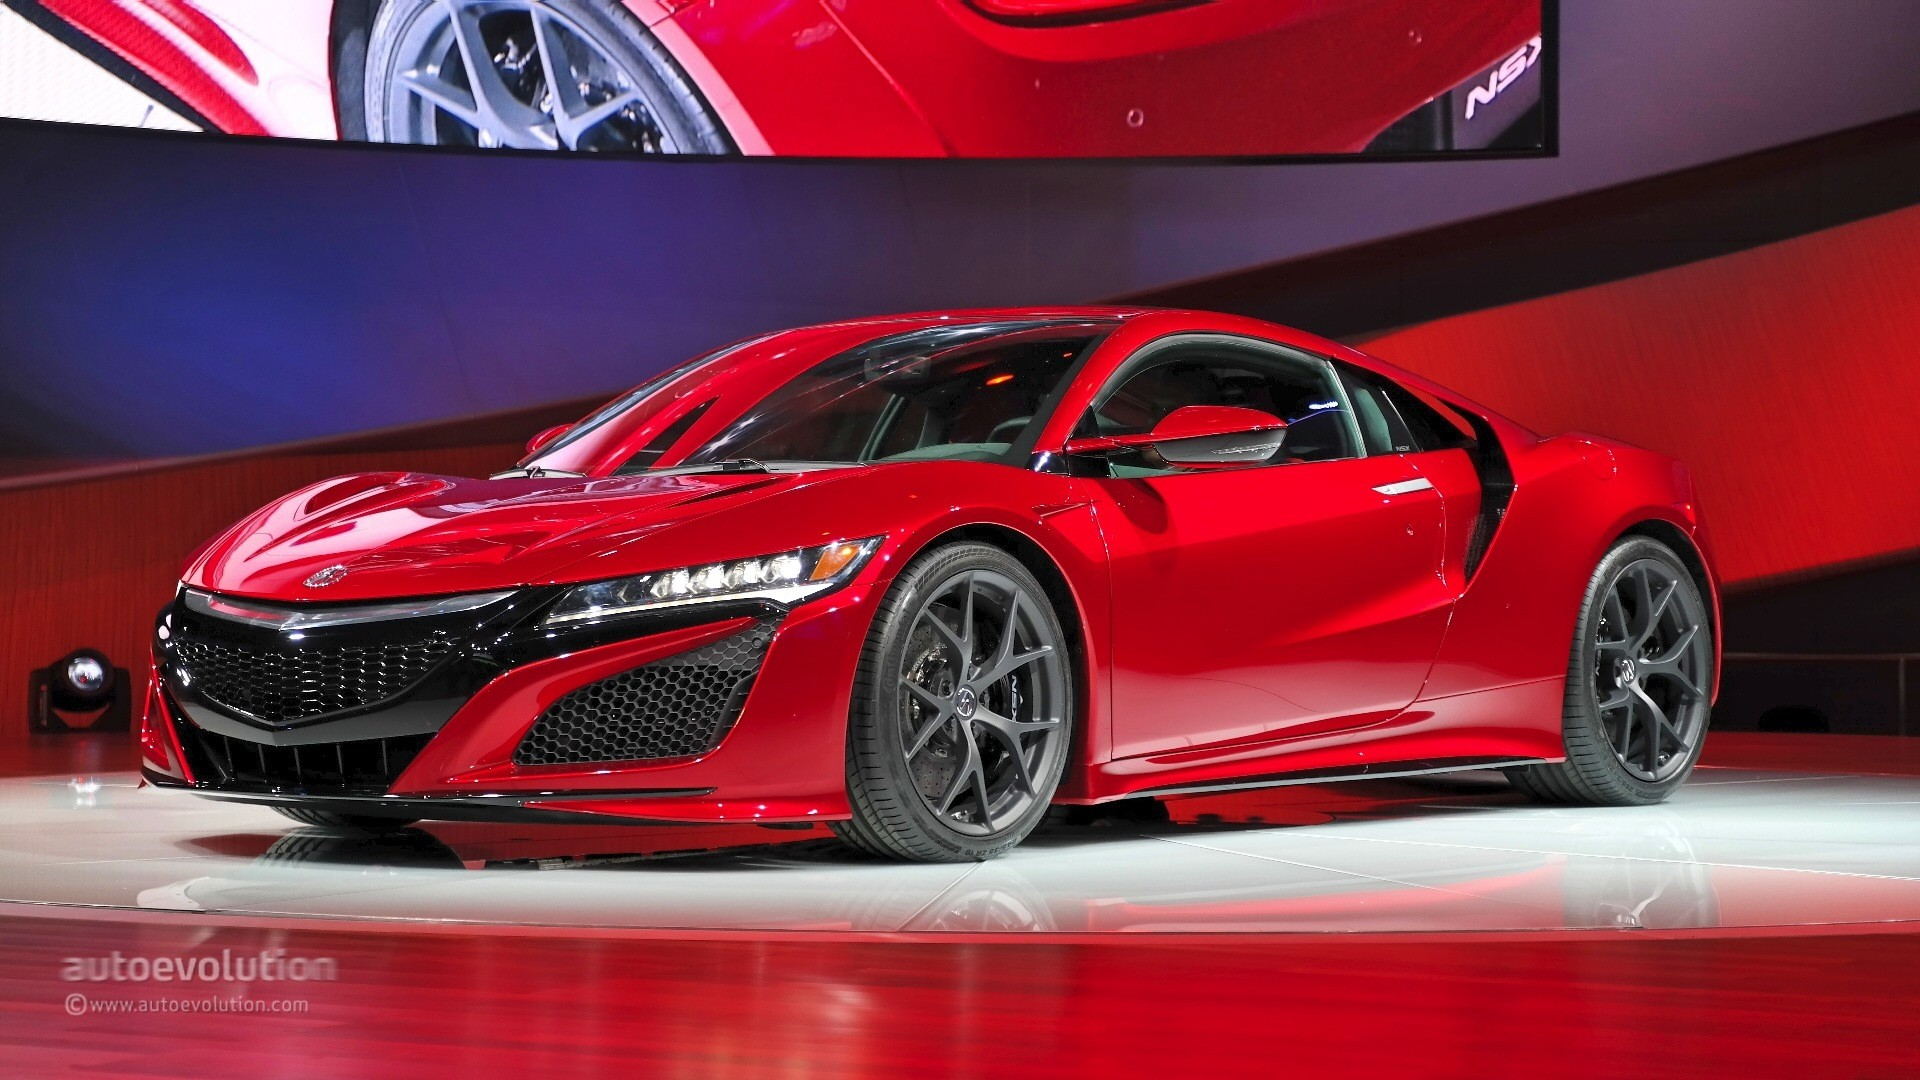 Acura Releases New Tech Details About The 2016 NSX